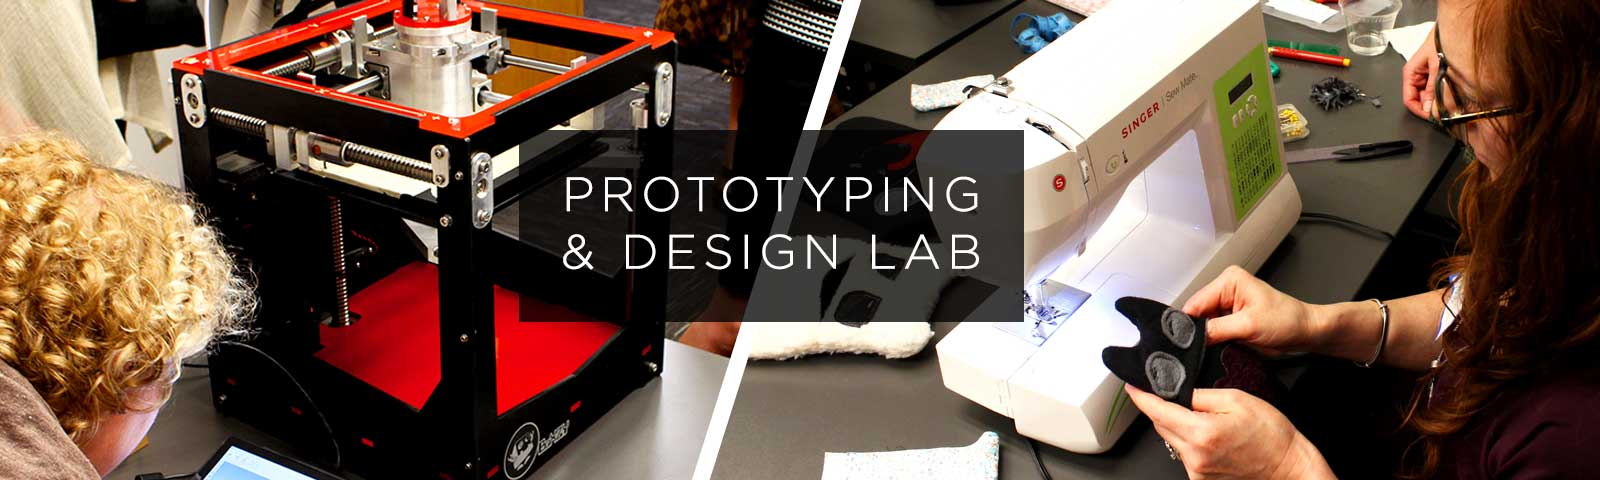 Upcoming Events from the Prototyping & Design Lab